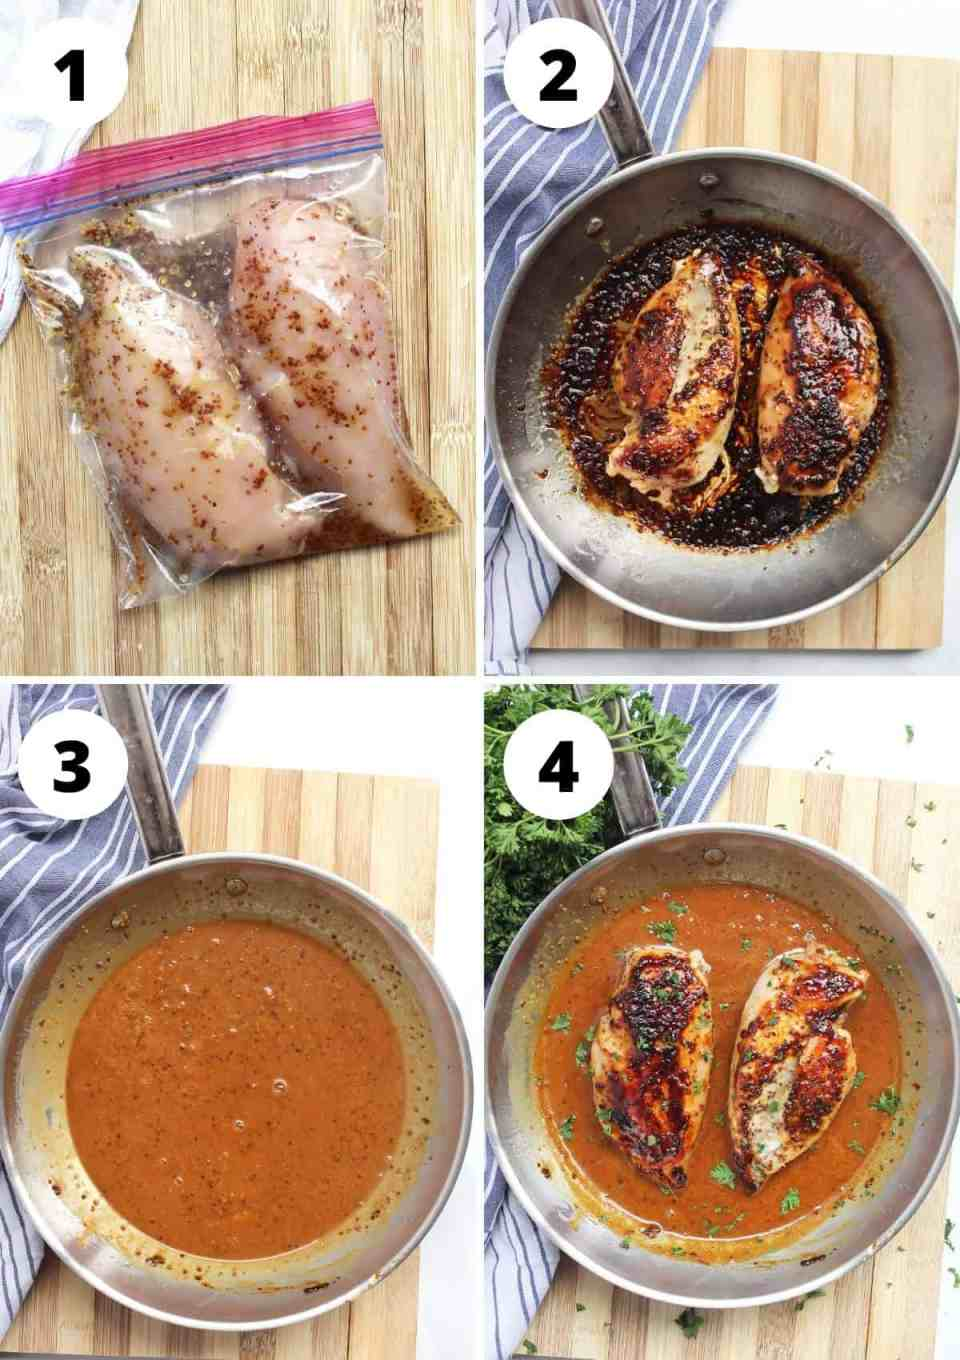 Four process shots to show how to marinate and cook the chicken breasts.